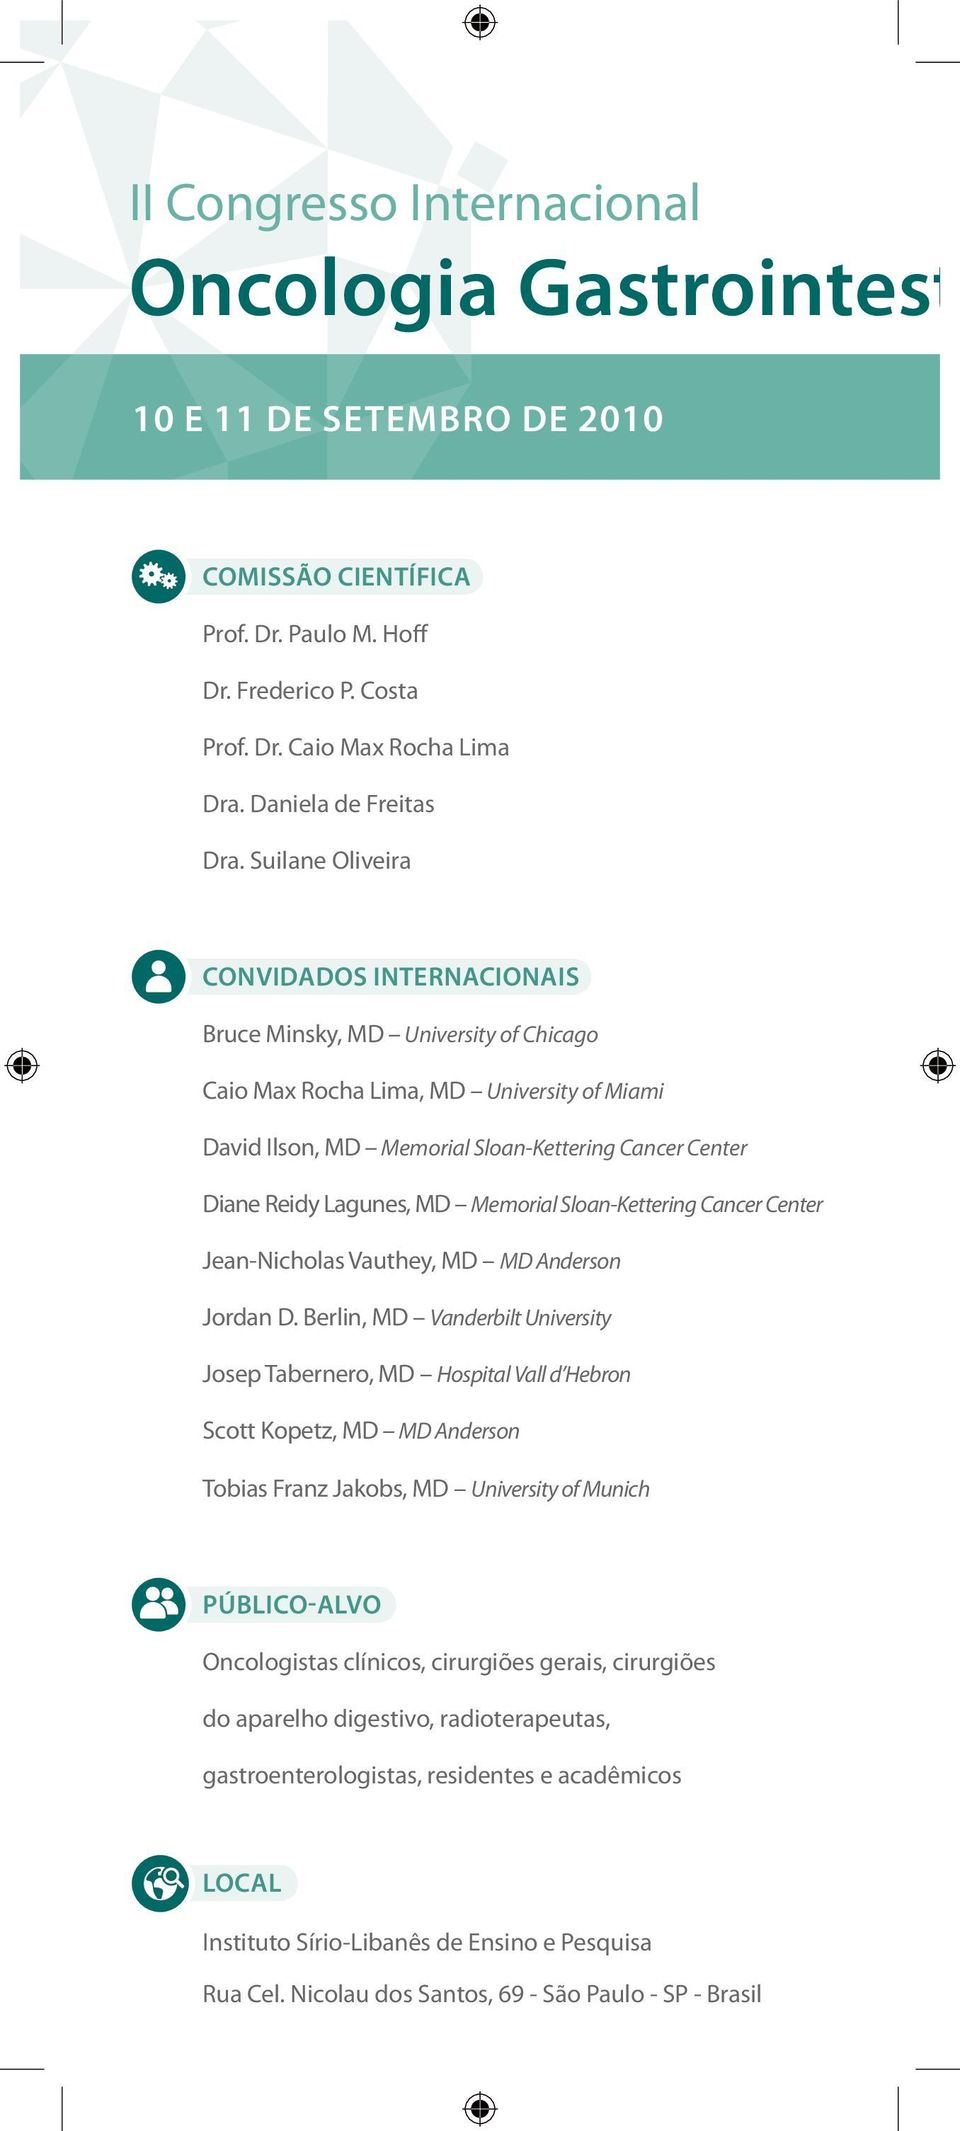 Suilane Oliveira Convidados Internacionais Bruce Minsky, MD University of Chicago Caio Max Rocha Lima, MD University of Miami David Ilson, MD Memorial Sloan-Kettering Cancer Center Diane Reidy